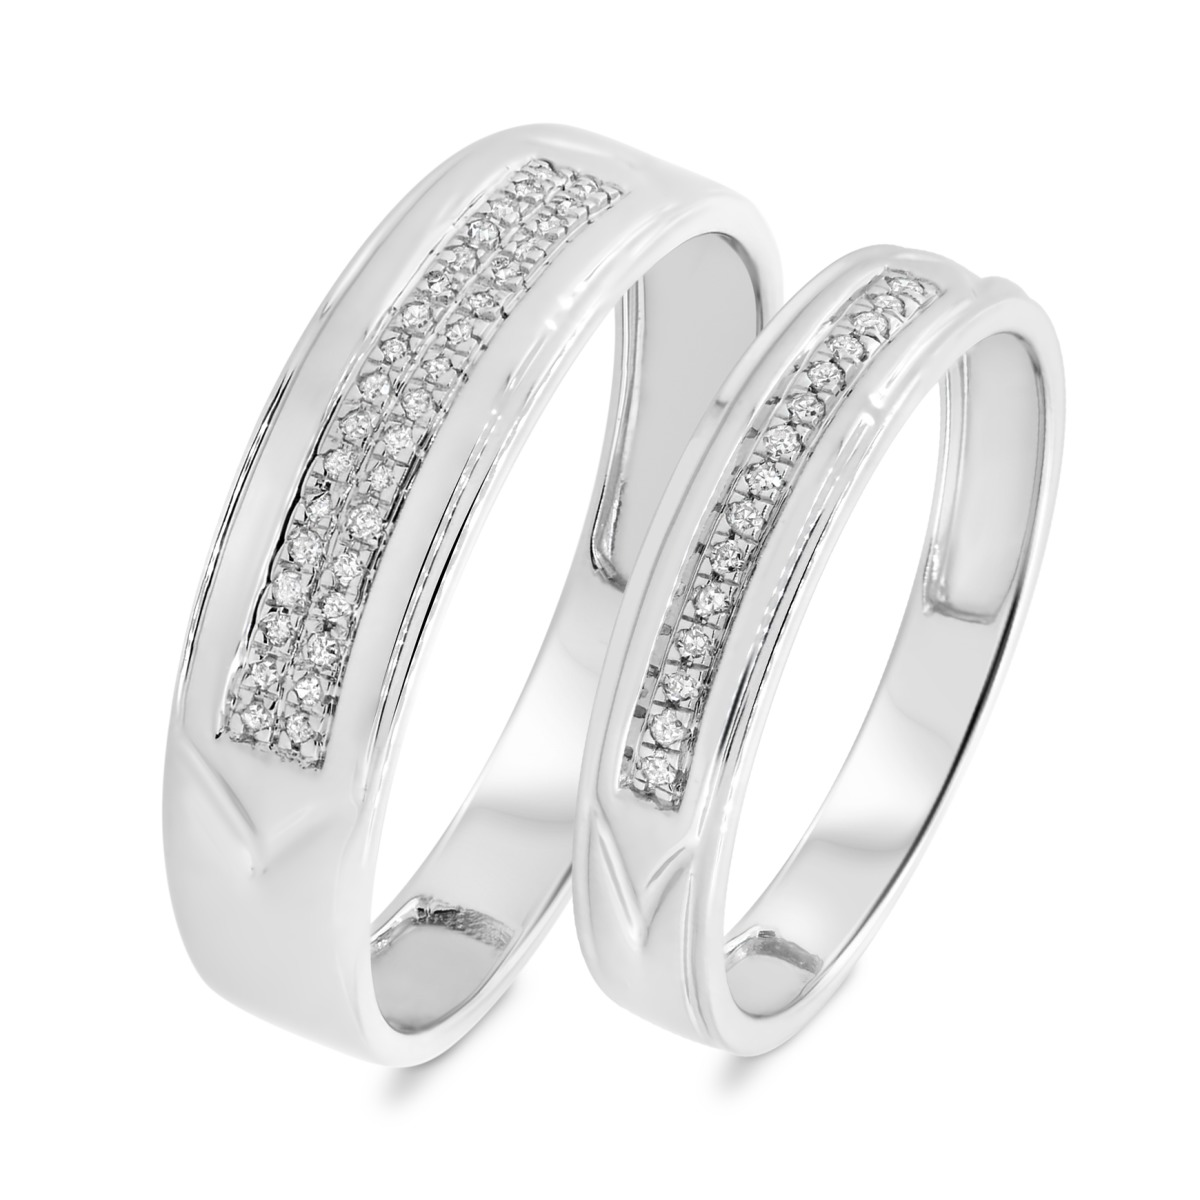 1/8 CT. T.W. Diamond Matching Wedding Band Set 14K White Gold